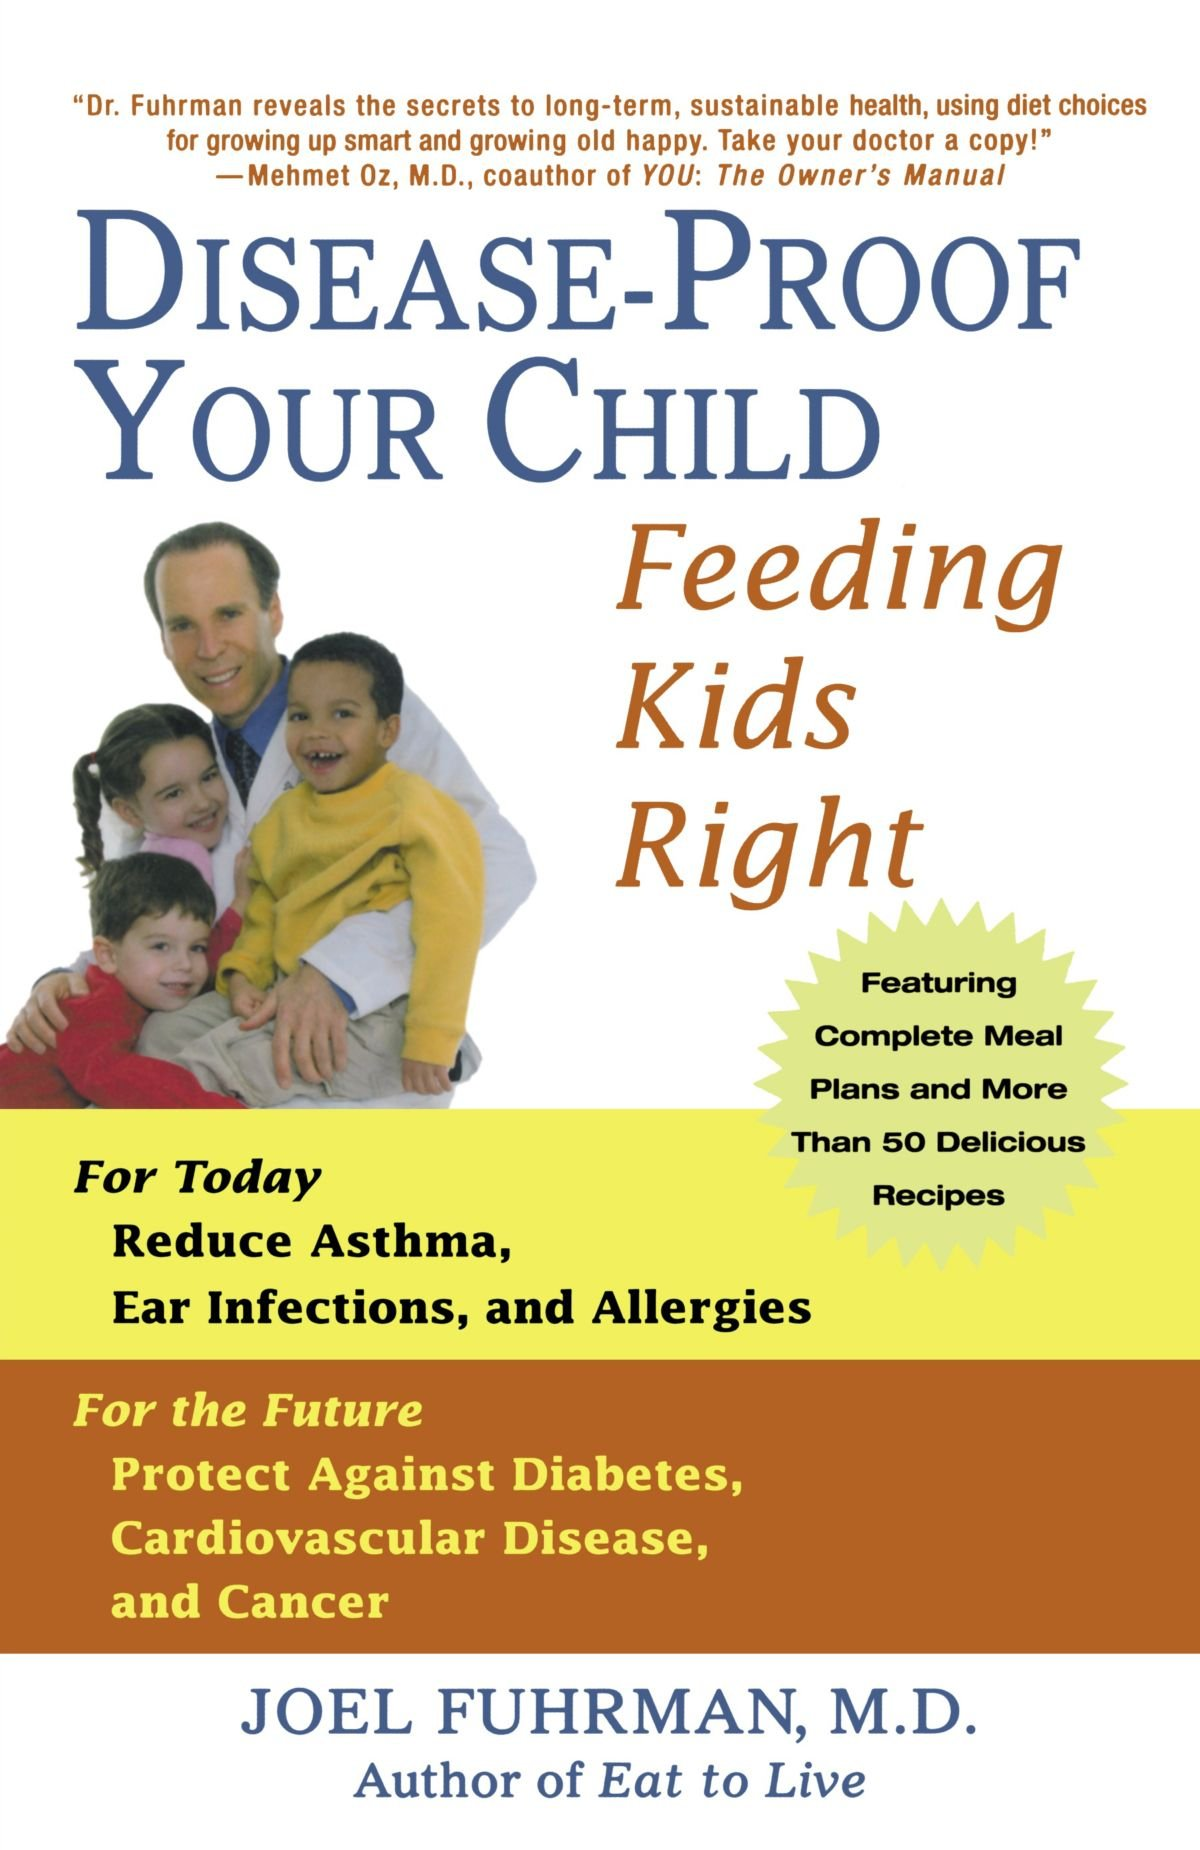 Disease-Proof Your Child - By Dr. Joel Fuhrman, MDIn his private practice, Joel Fuhrman, M.D. helps families transform their eating habits and recover their health. His nutrient-rich eating plan can have a significant impact on your child's resistance to dangerous infections, and a dramatic effect on reducing the occurrence of illnesses like asthma, ear infections, and allergies. Dr. Fuhrman explains how you can make sure your children are eating right to maintain a healthy mind and body, and how eating certain foods and avoiding others can positively impact your child's IQ and success in school.He also presents the fascinating science that demonstrates that the current epidemic of adult cancers and other diseases is closely linked to what we eat in the first quarter of life. Eating well in our early years may enable us to win the war on cancer. Bolstered by this scientific evidence, he helps you do everything you can to protect your child against developing diabetes, cardiovascular disease, autoimmune diseases, and cancer through a solid nutritional groundwork.Featuring easy-to-prepare, kid-friendly recipes that will satisfy even the pickiest eaters, your whole family will learn to establish life-long healthful eating habits.Harness the power of a nutrient-rich diet to ensure a lifetime free of illness and full of health!